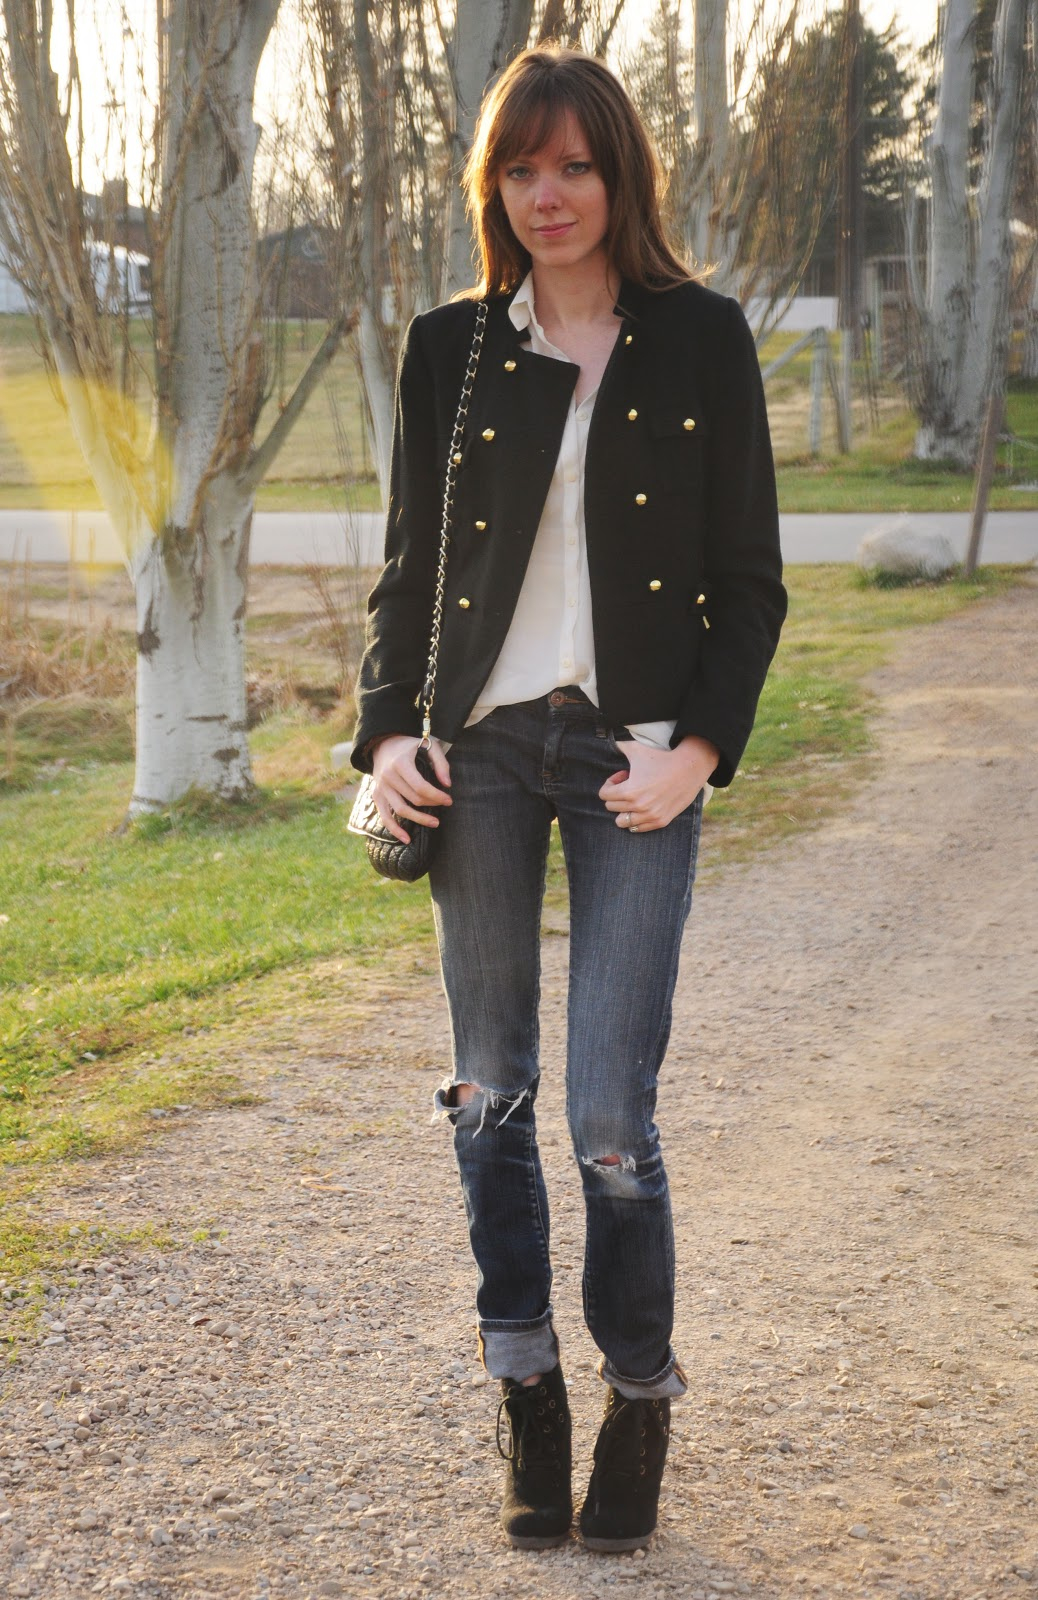 Black military jacket, ripped jeans